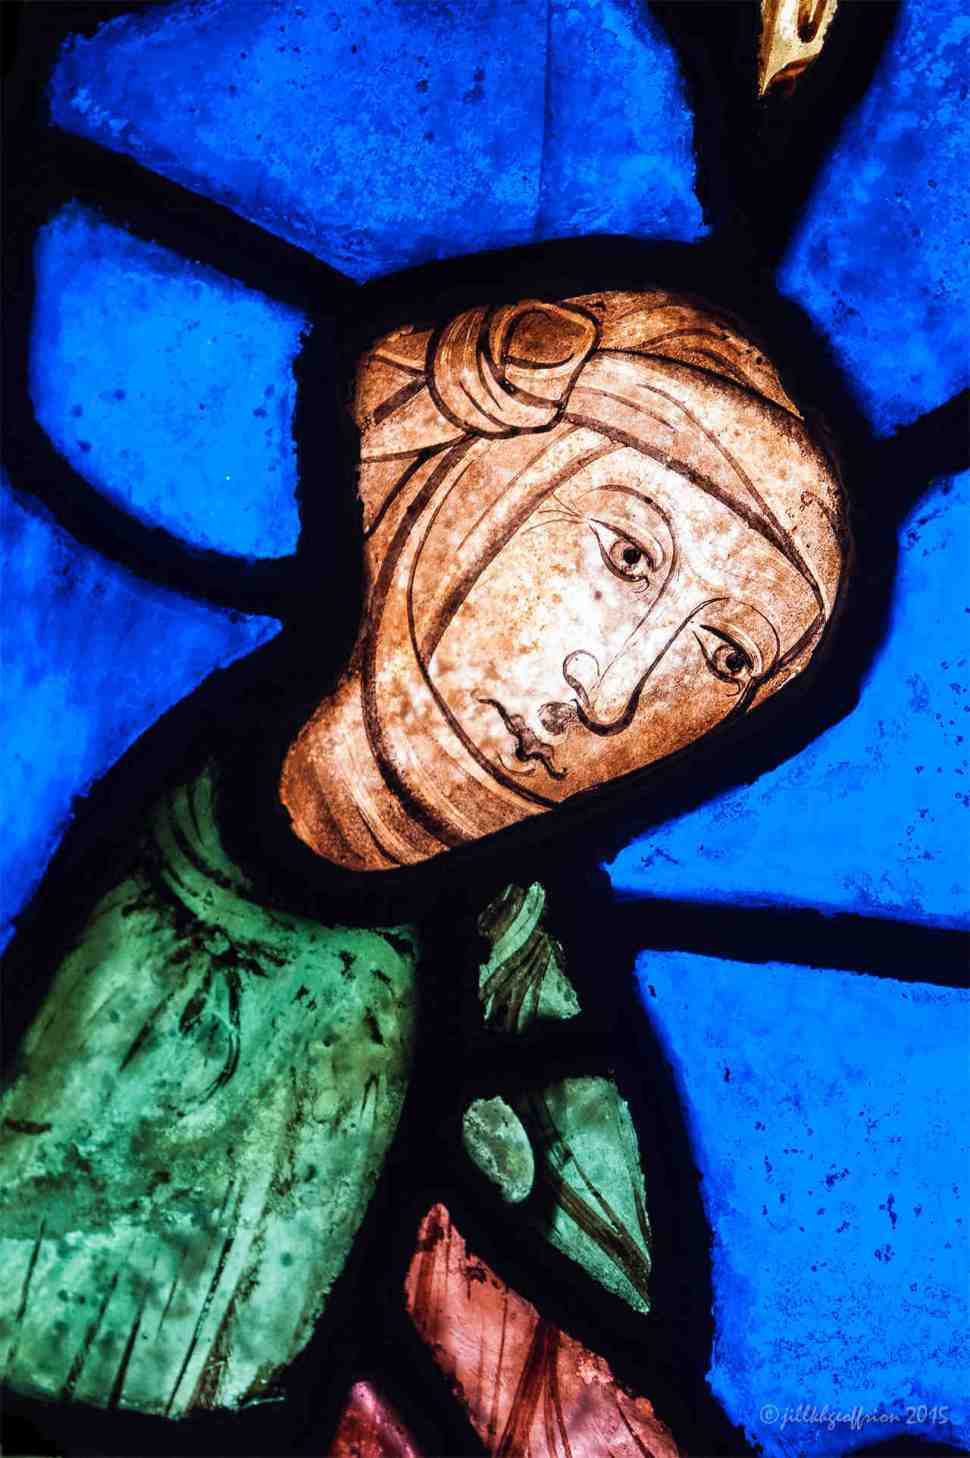 Mary's First Bath in the Life of Mary Window by Jill K H Geoffrion